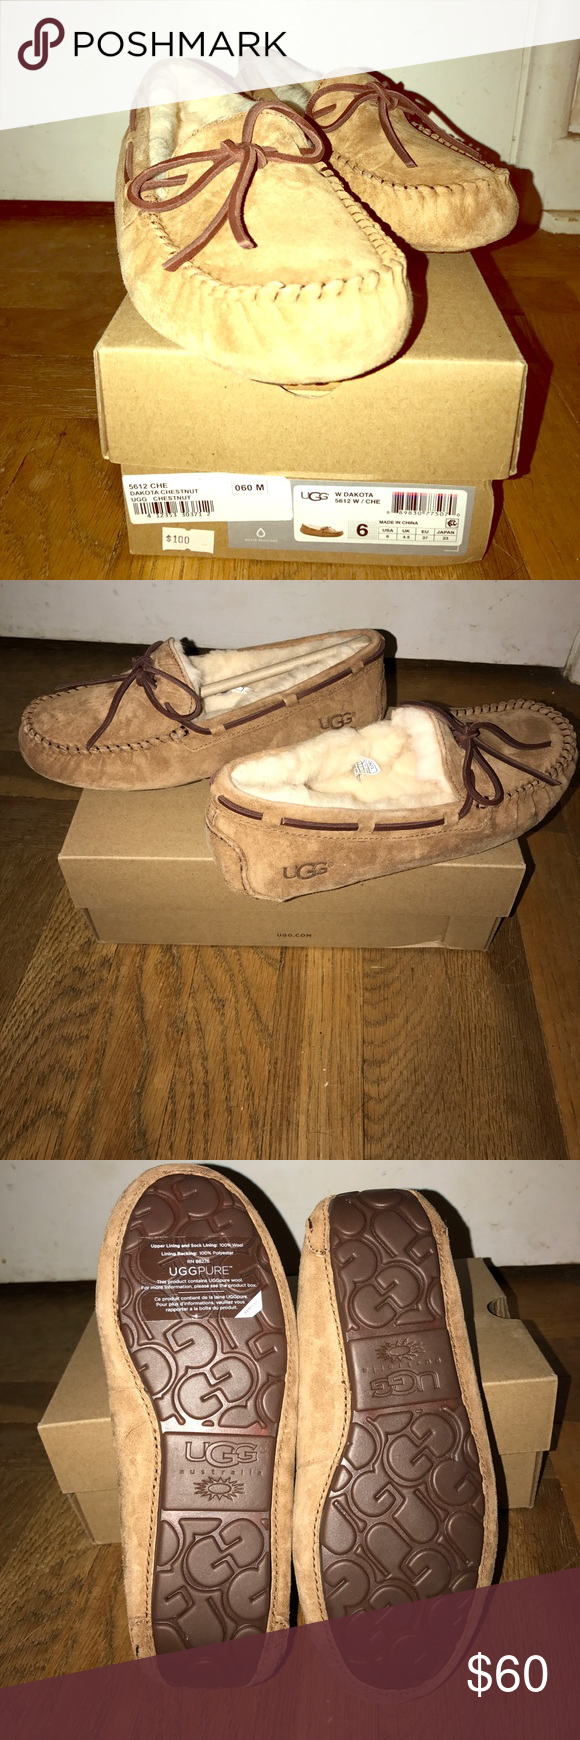 NWIB AUTHENTIC UGG DAKOTA 💕❤ Brand spanking new in box! Authentic UGG Dakota slippers in Chestnut size 6! I have these in three different colors personally and love them. I just don't need these and don't like returning items lol. My loss your gain! Super comfy! Included authenticity label which is only found in the left shoe of real uggs! ❤ UGG Shoes Moccasins